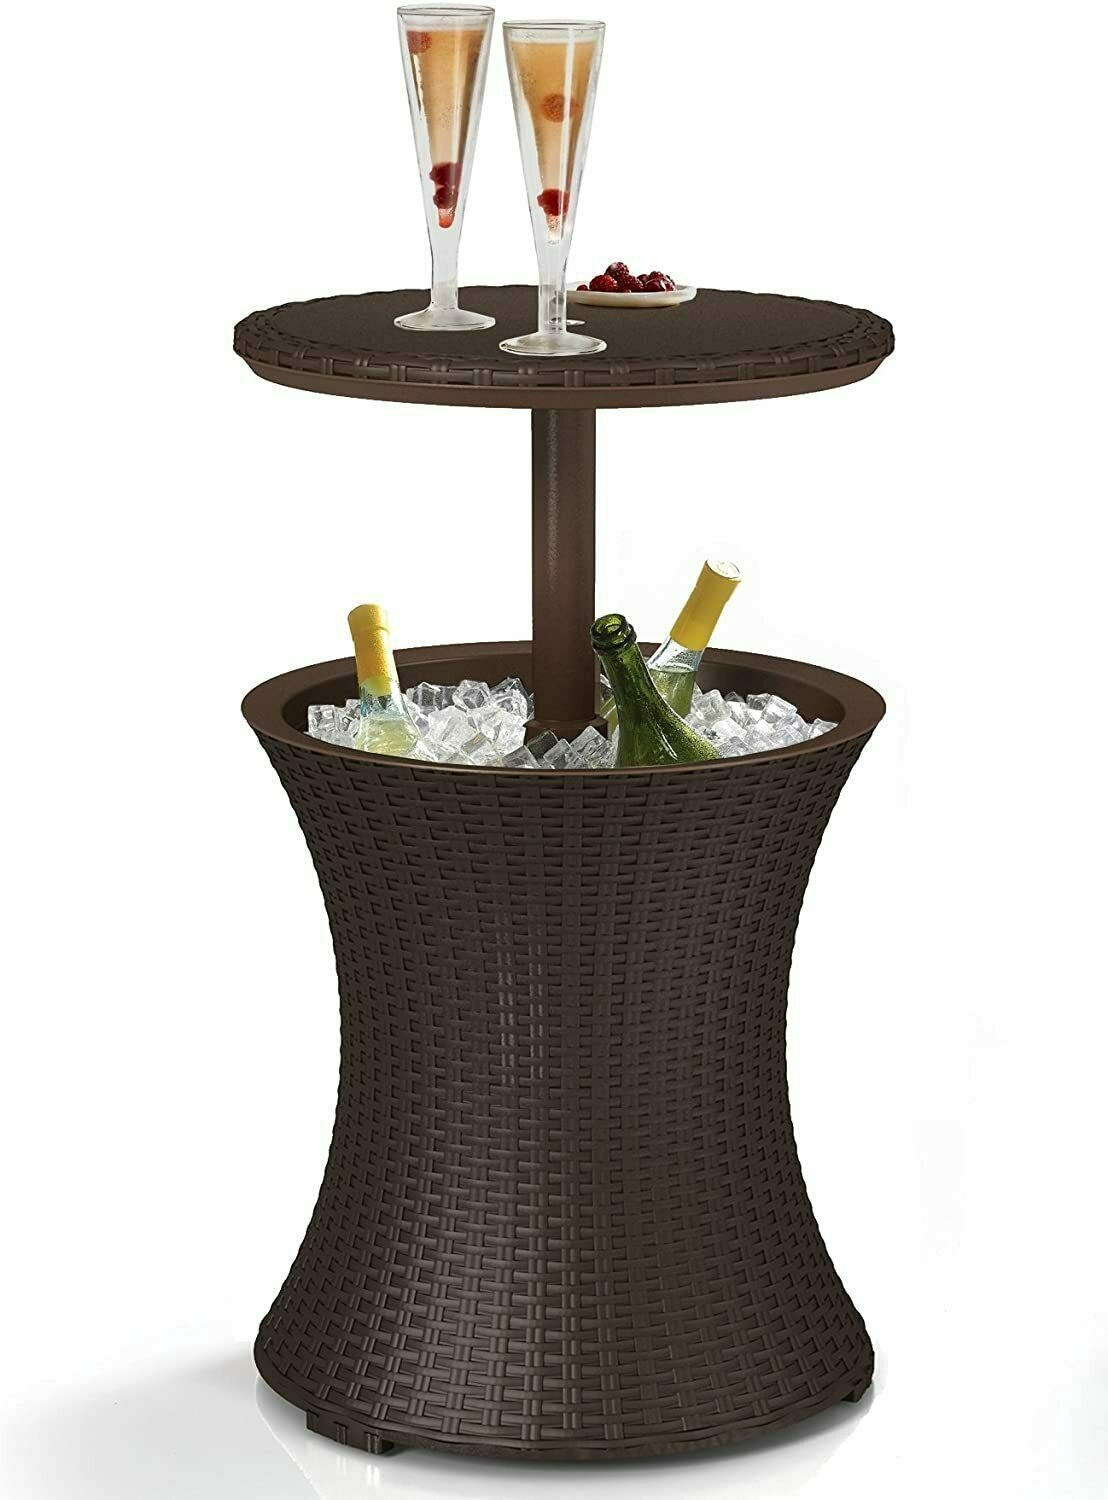 Keter Pacific Cool Bar Hot Tub Side Table